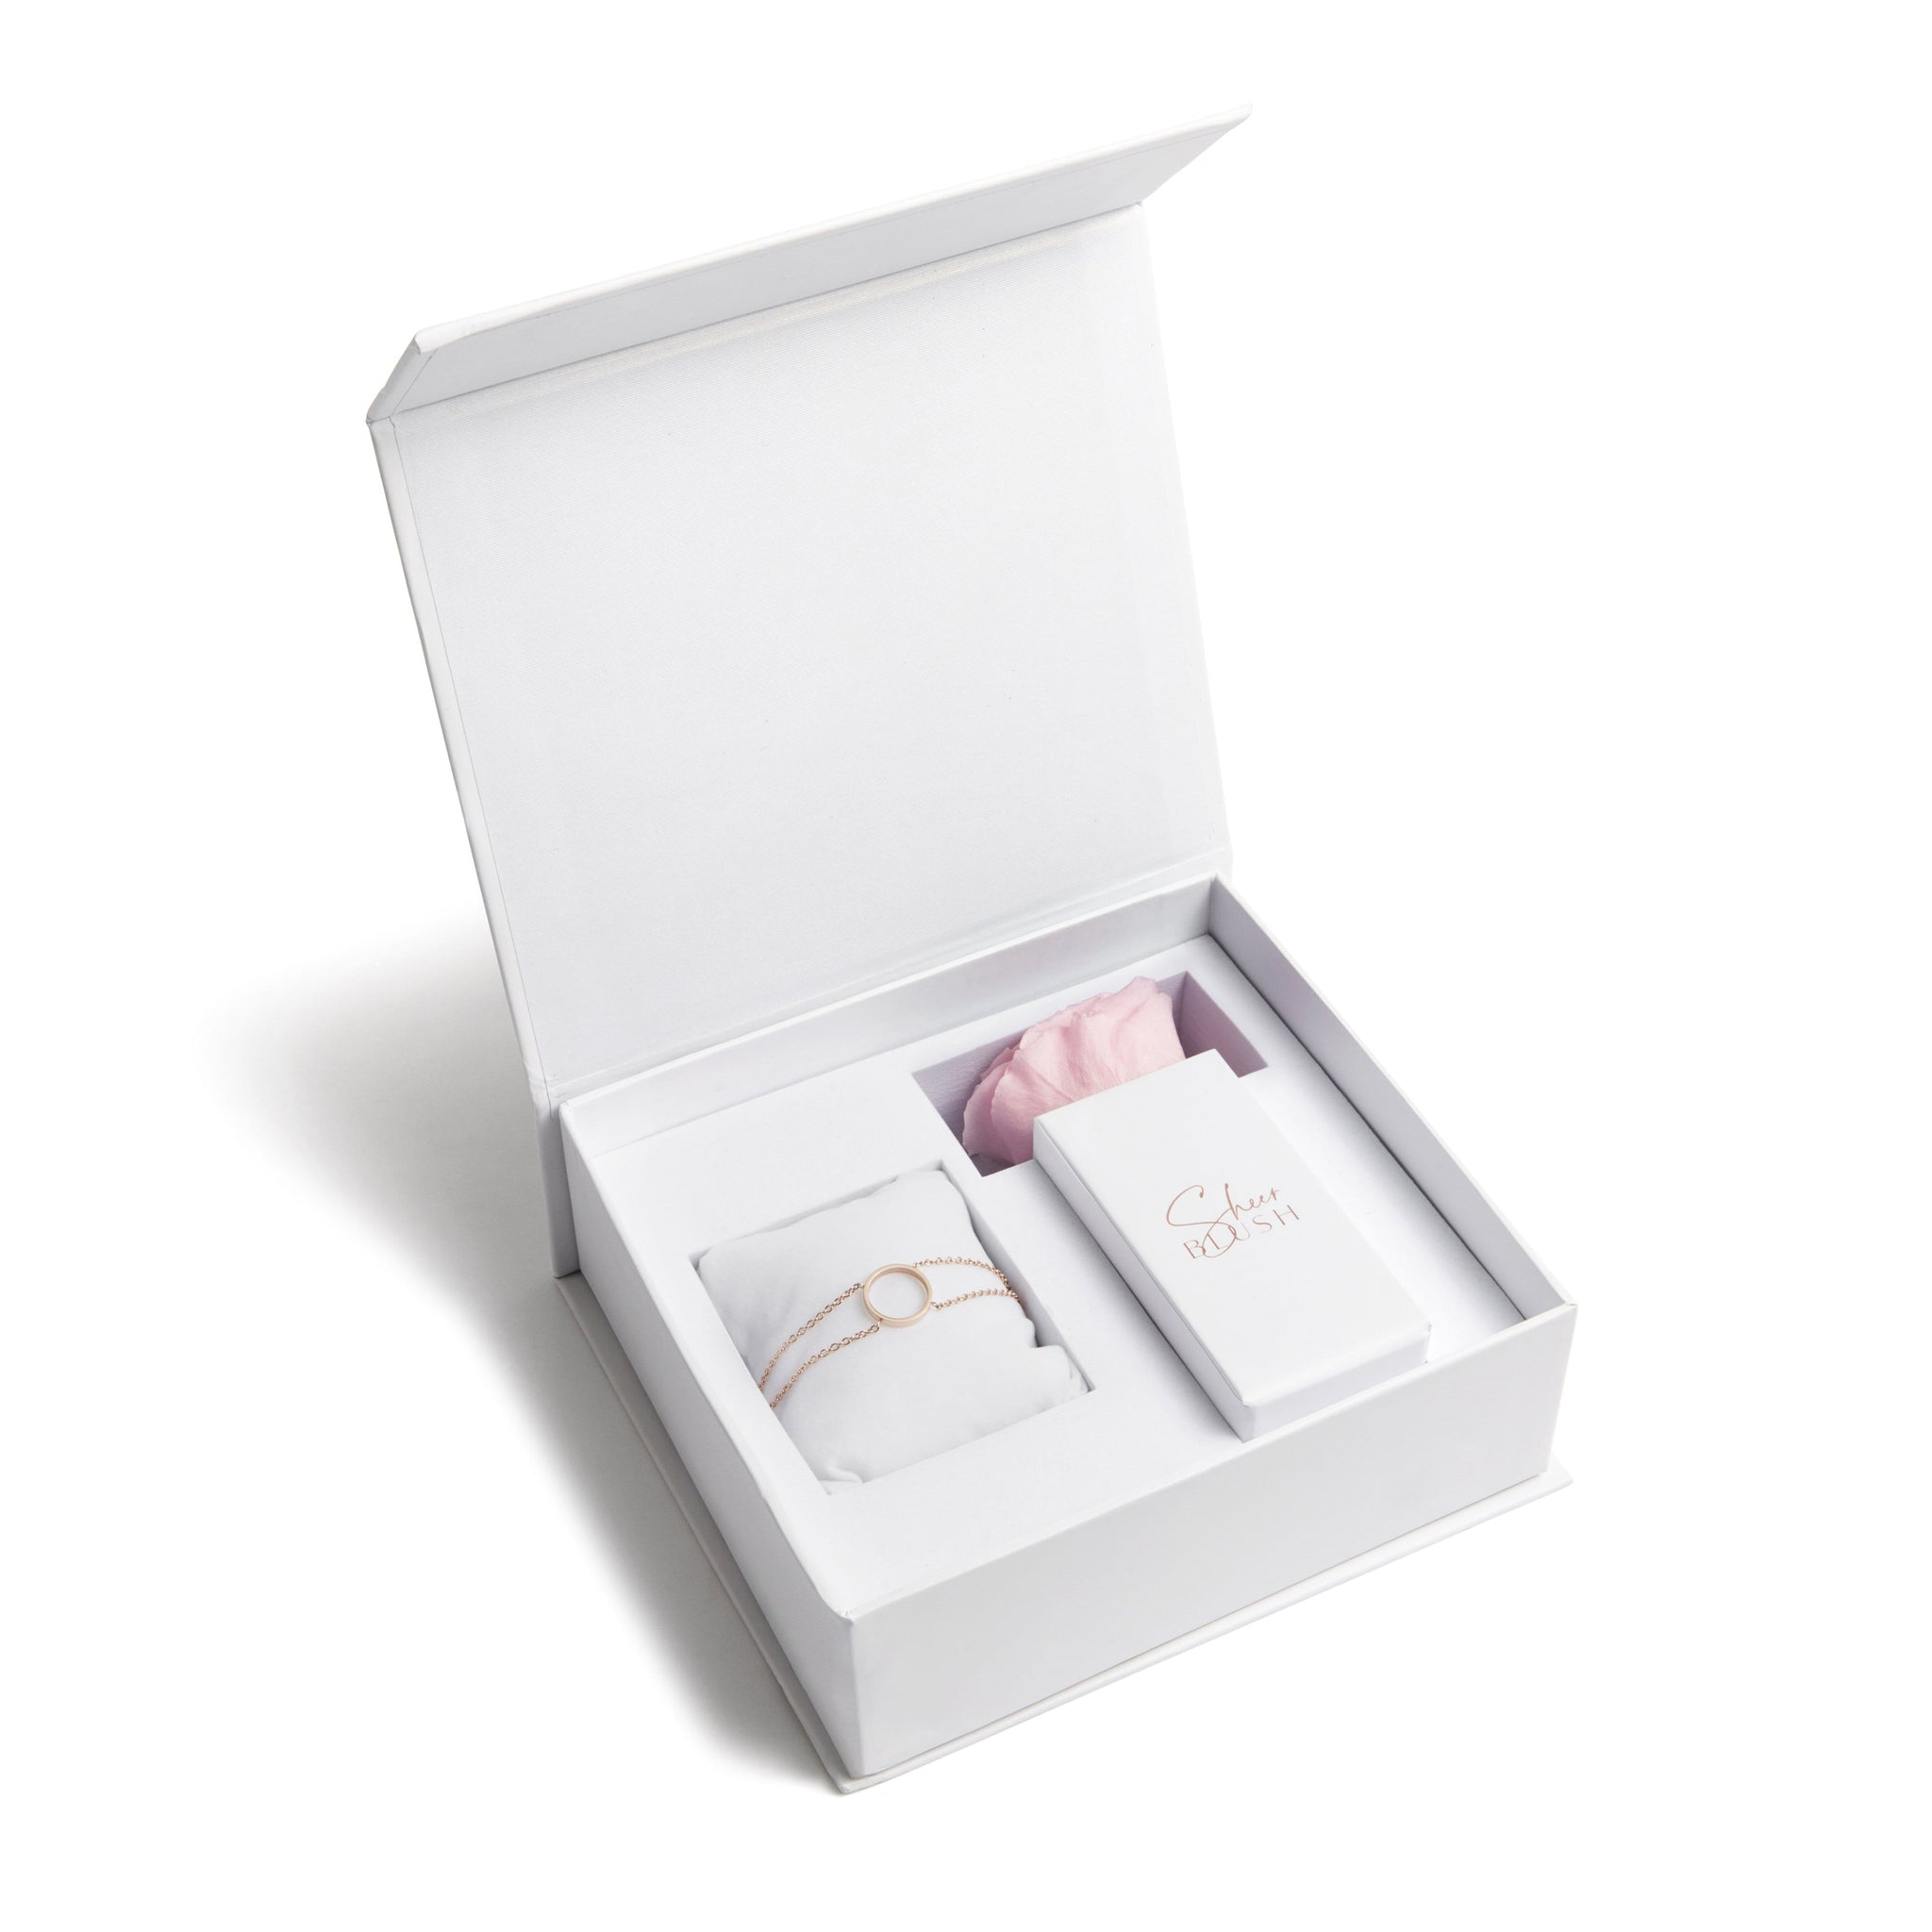 Eclipse Eternal Rose Gift Set (Blush)